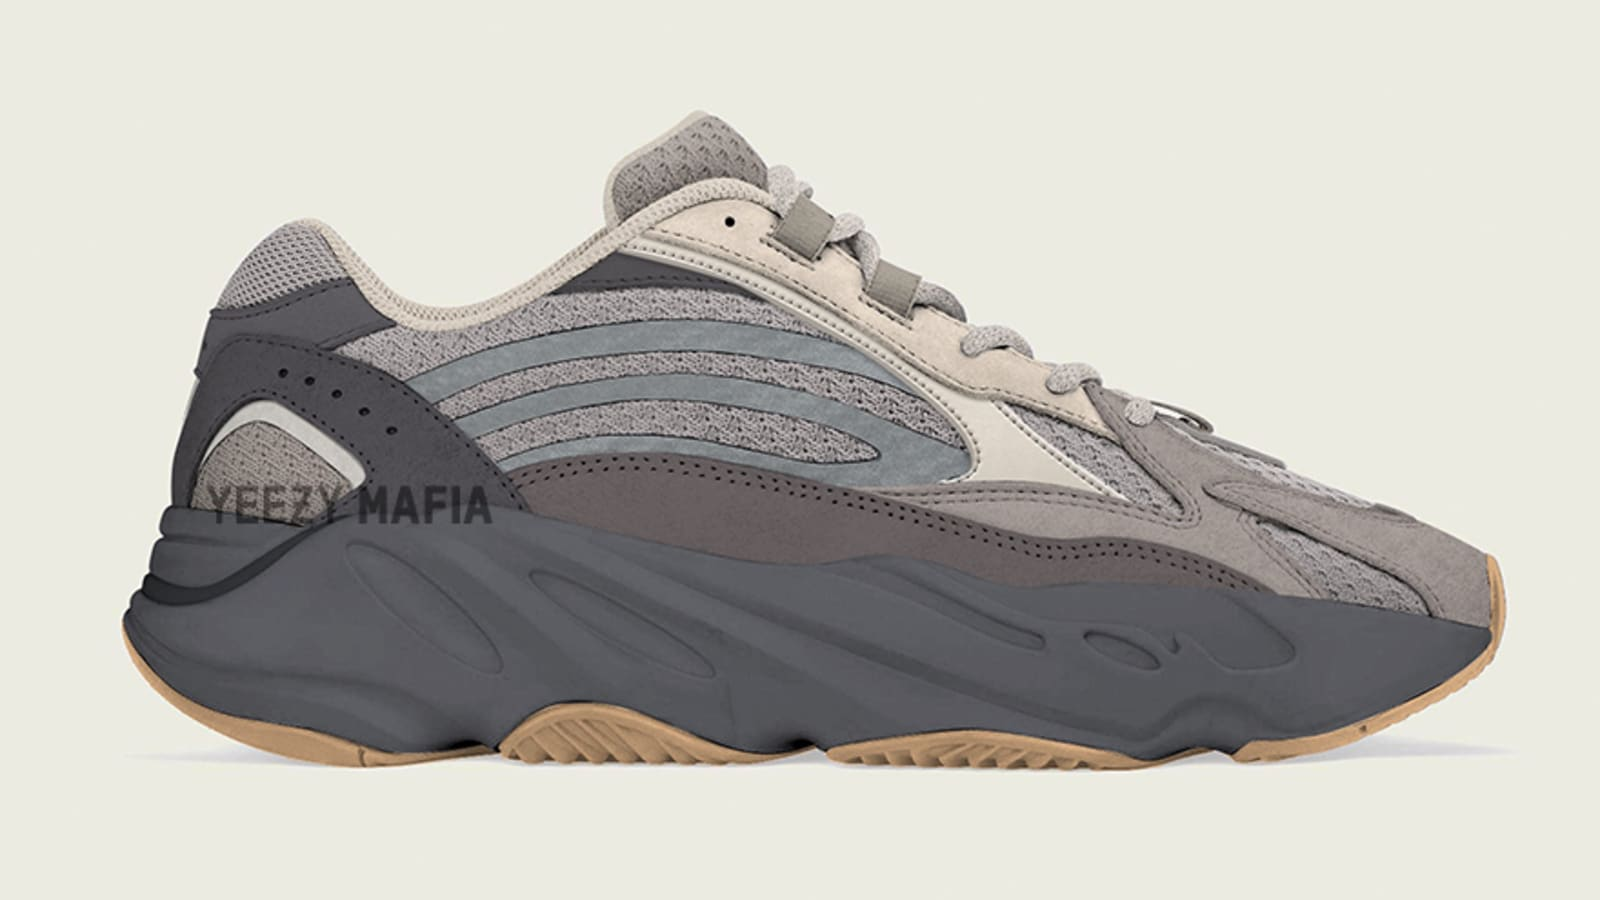 7f9d632ce Another Colorway of the Adidas Yeezy Boost 700 V2.